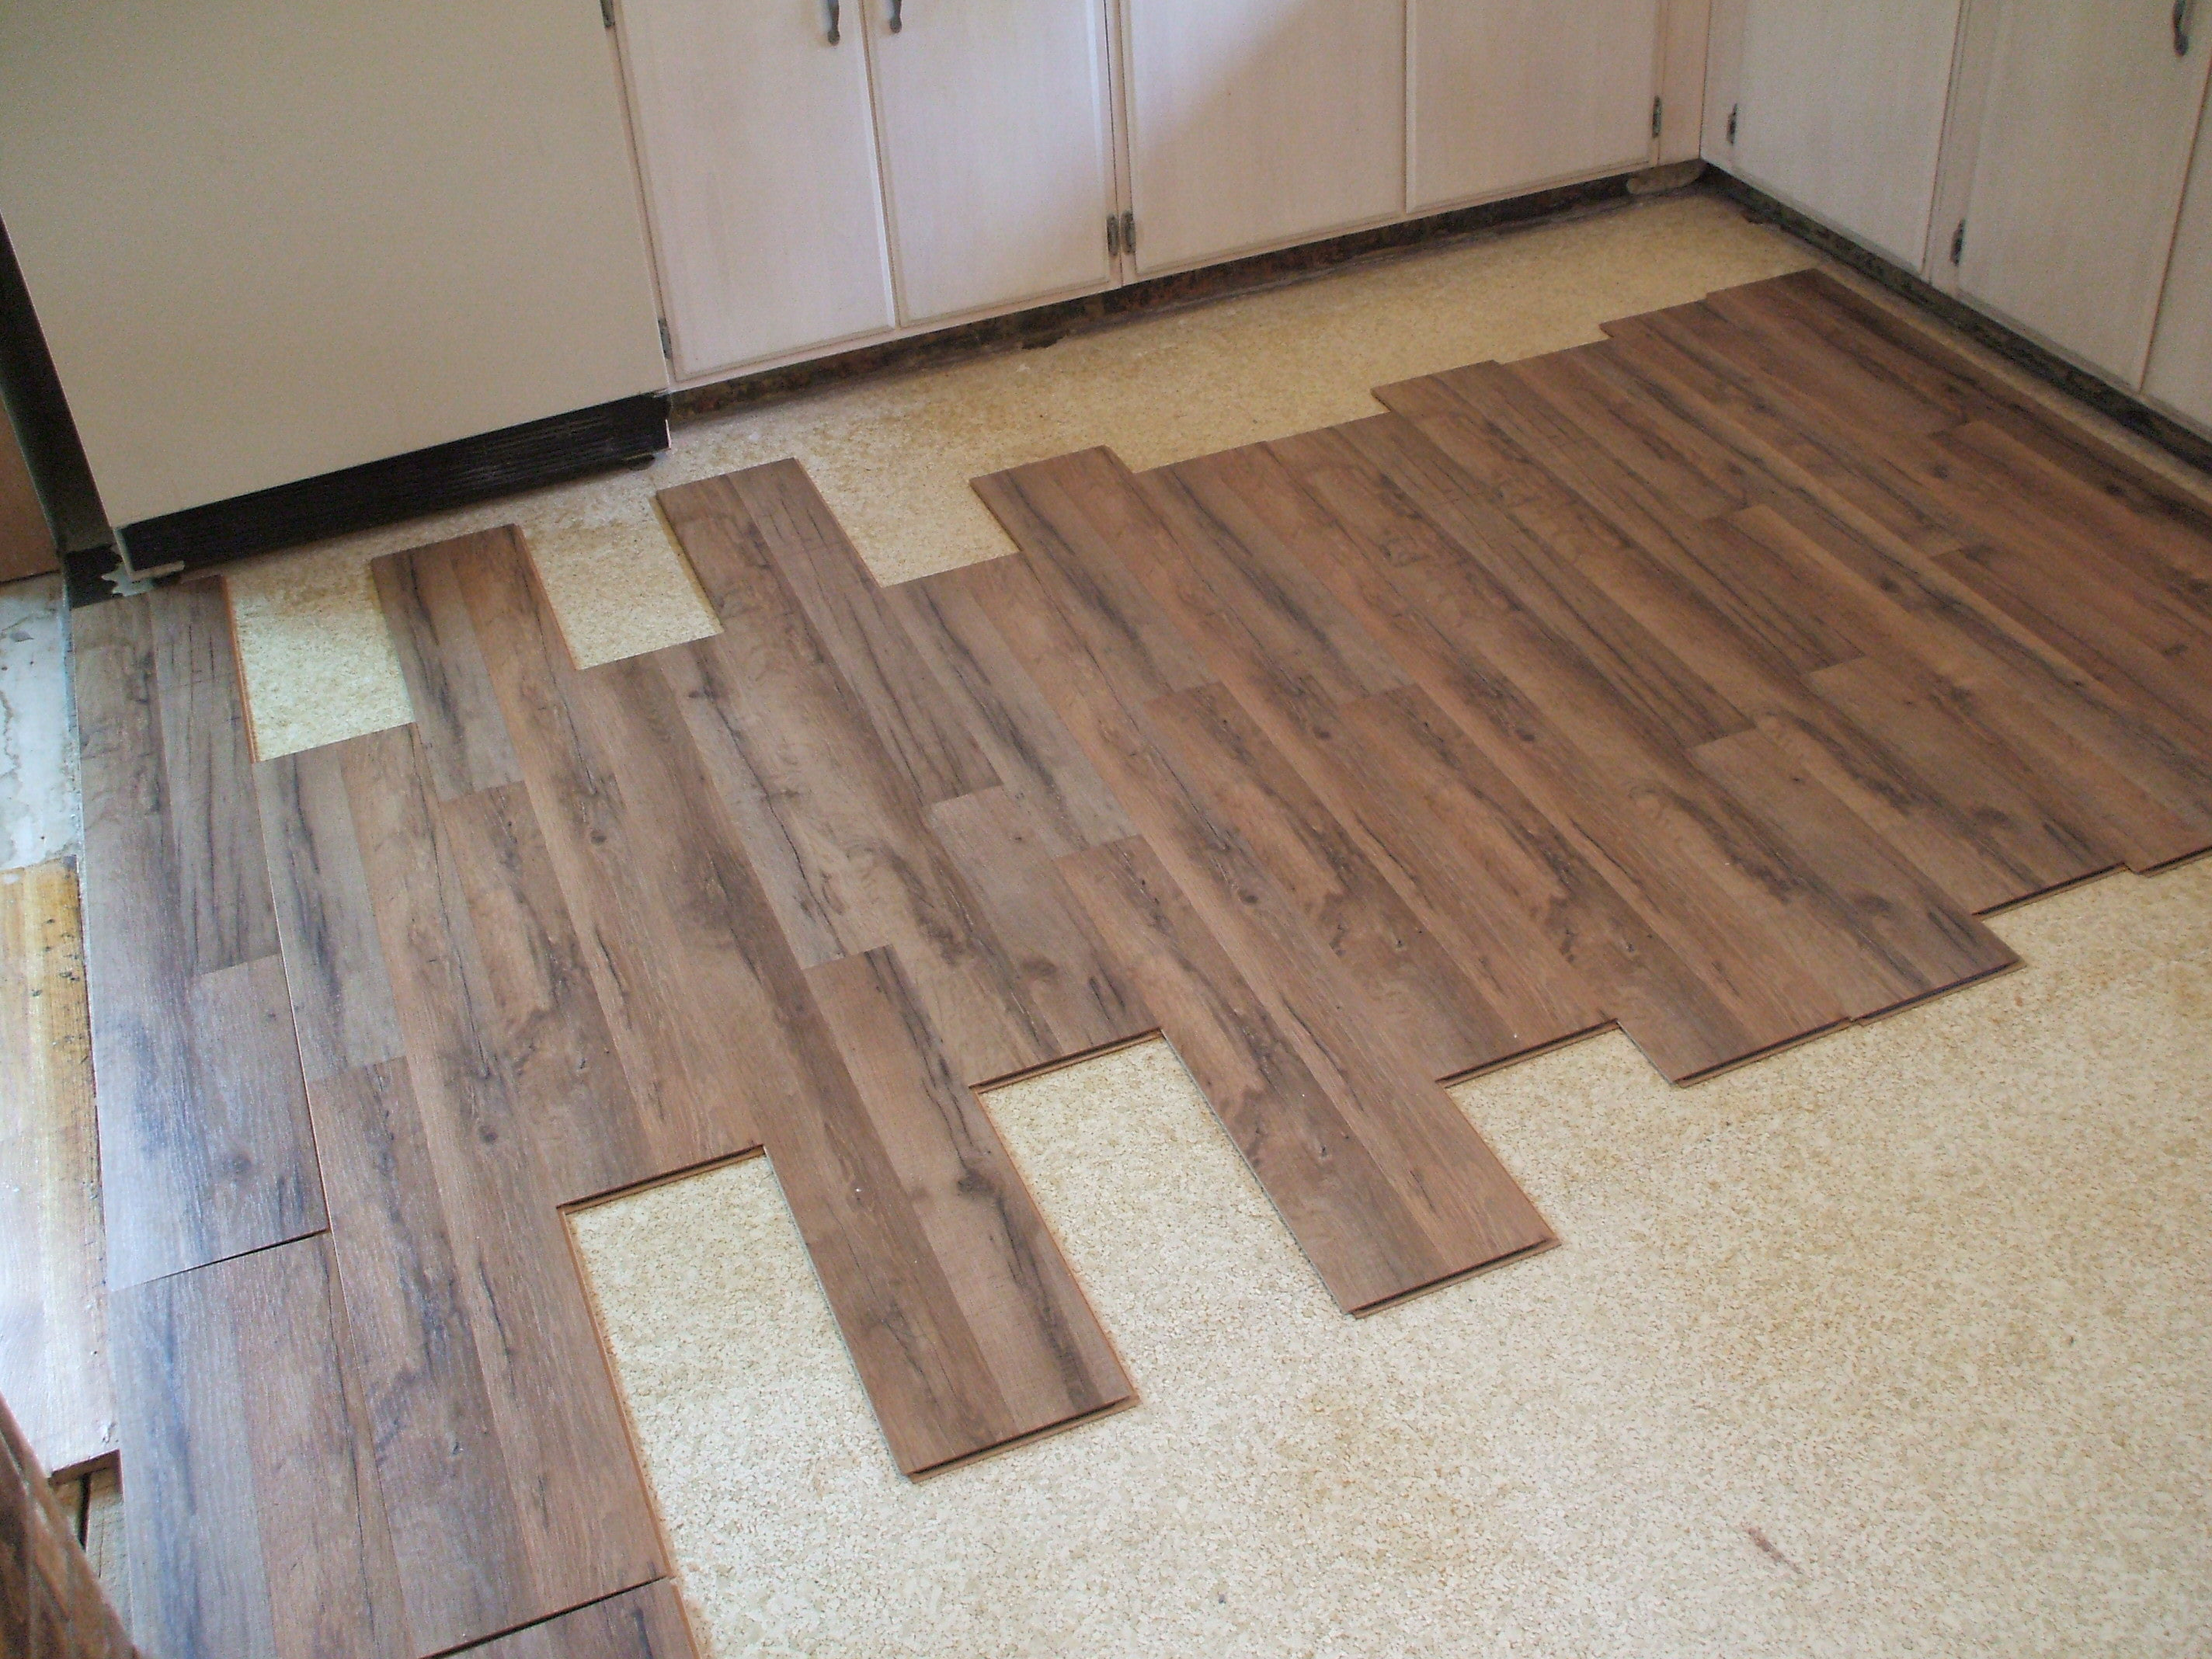 Flooring options for your rental home which is best dailygadgetfo Choice Image